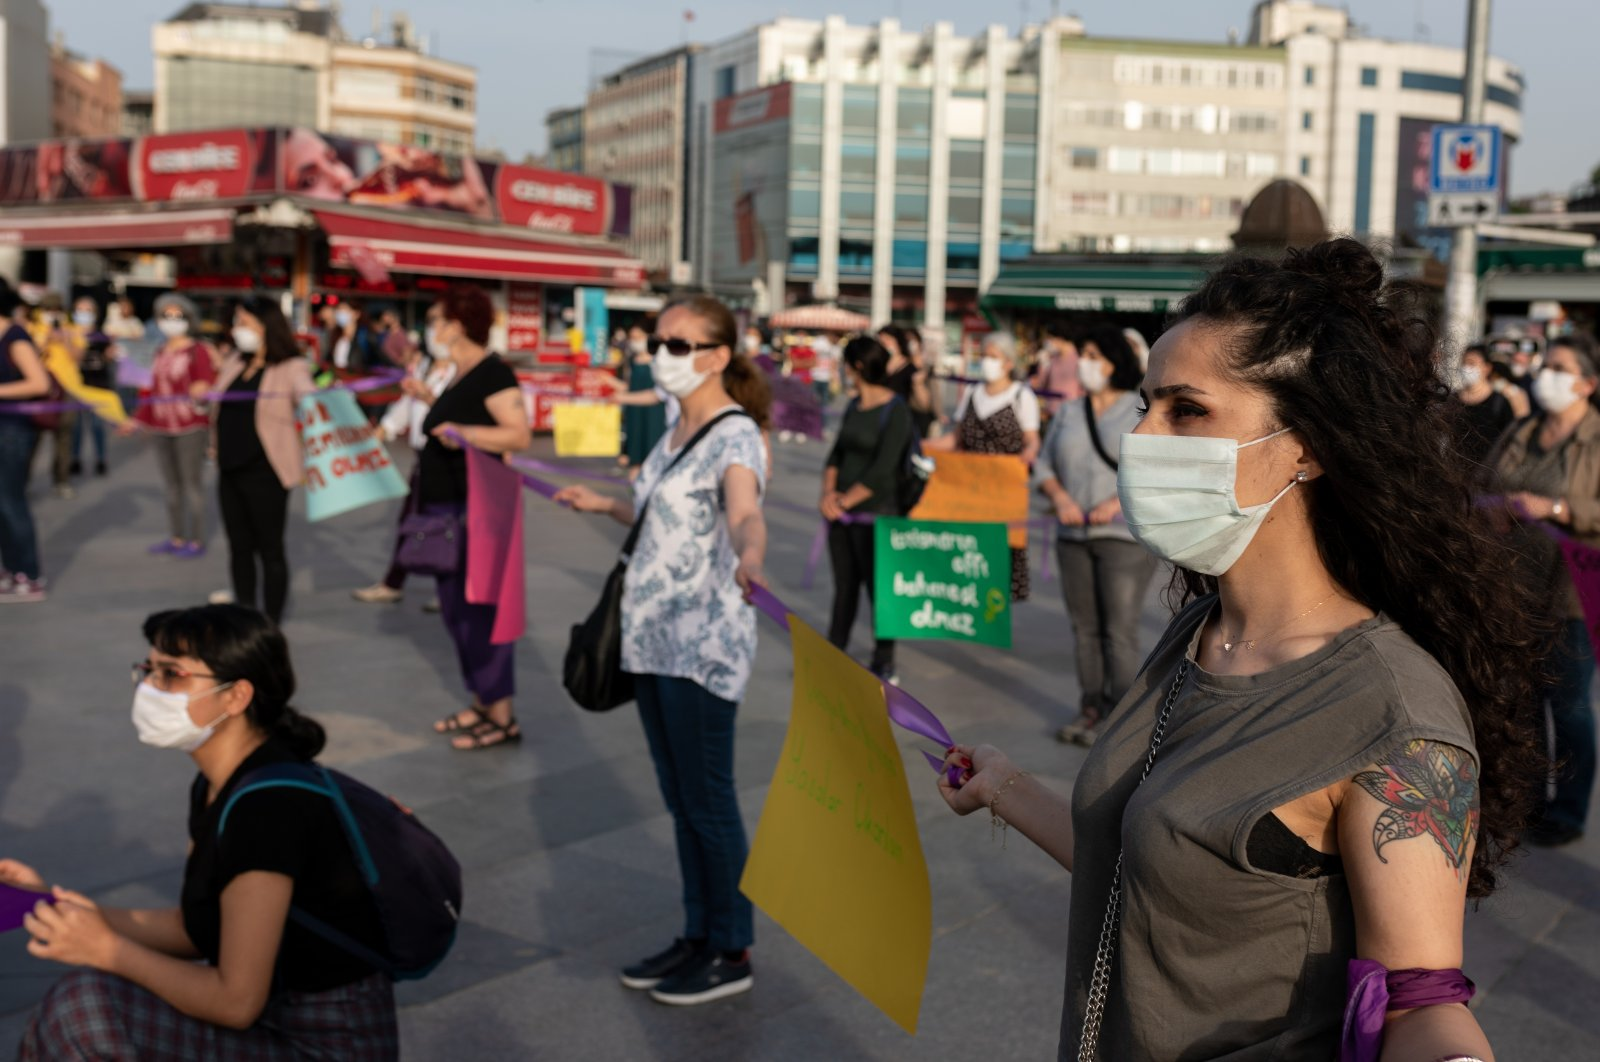 Women wearing protective face masks are seen during a demonstration to protest violence against women and child abuse during the coronavirus outbreak, Istanbul, Turkey, May 20, 2020.  (Getty Images)